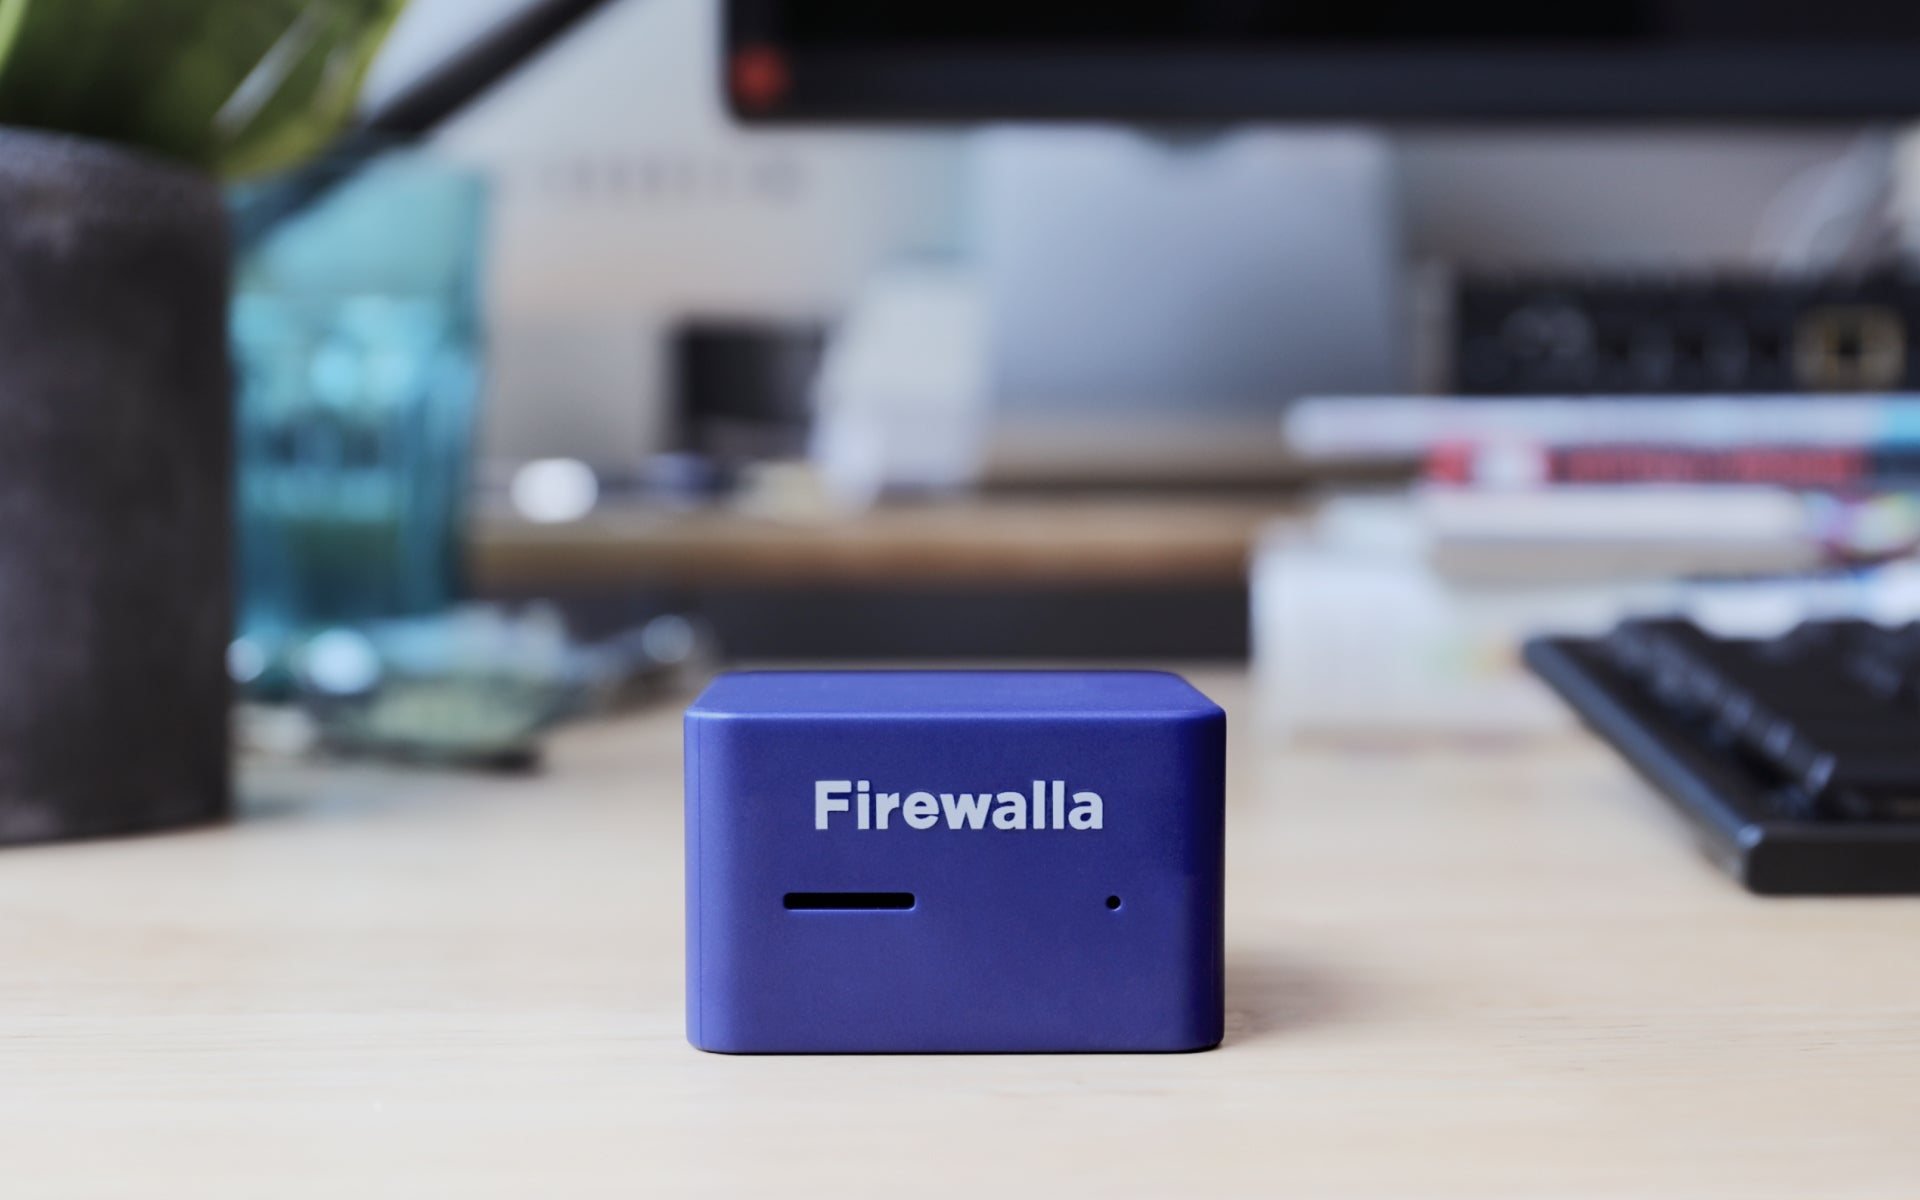 Firewalla Blue Plus: Smart & Powerful Cyber Security Firewall Appliance Protecting Your Family and Business (Ships Worldwide)